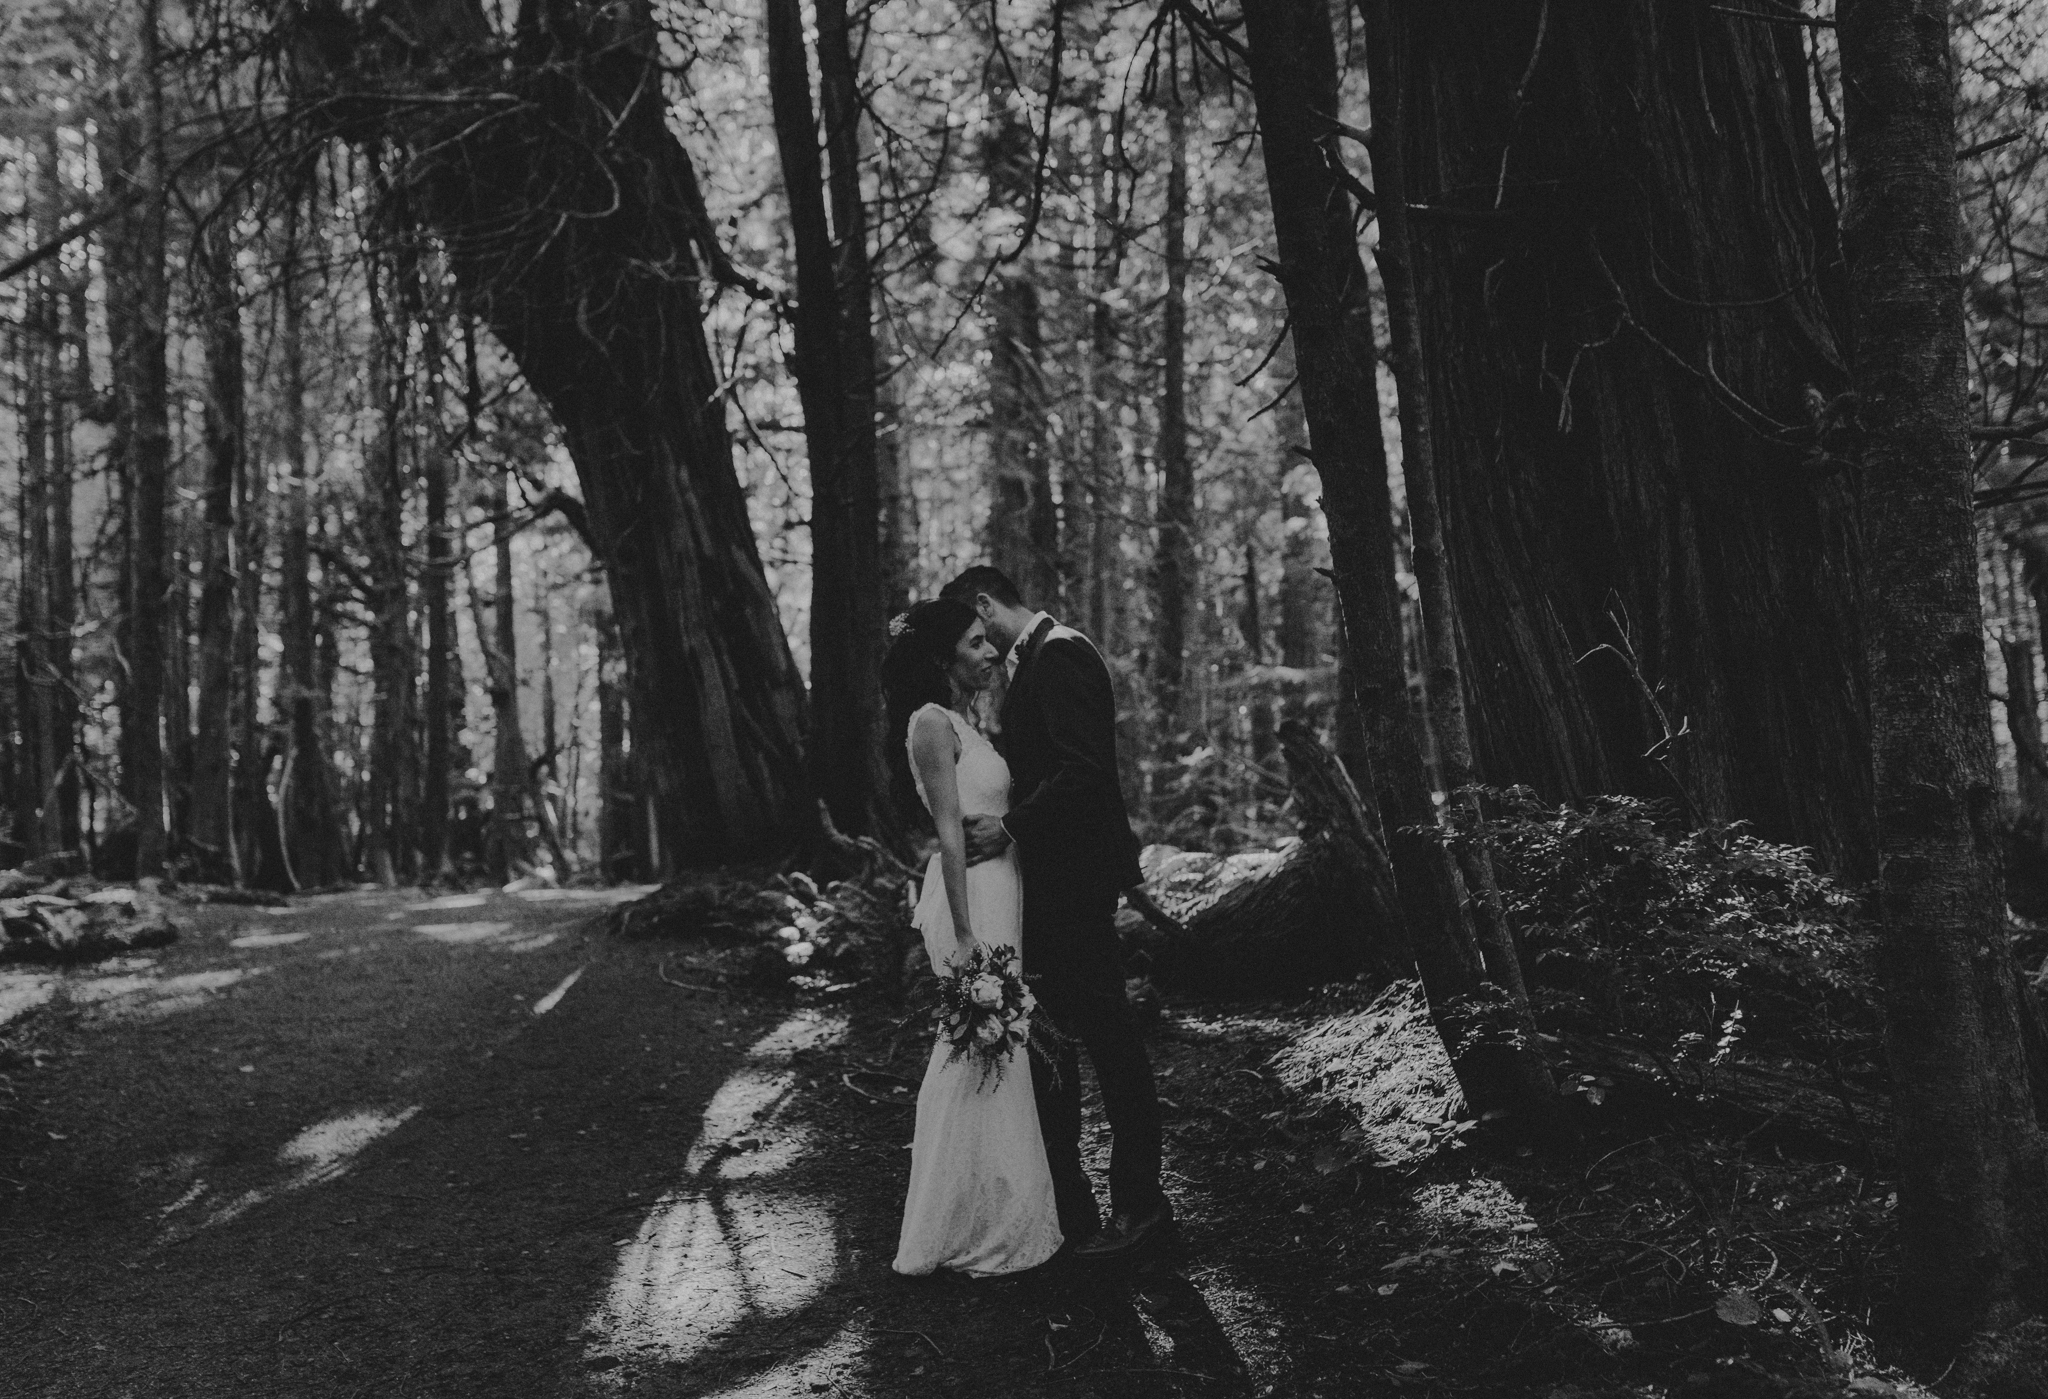 Isaiah + Taylor Photography - Cape Flattery Elopement, Olympia National Forest Wedding Photographer-024.jpg